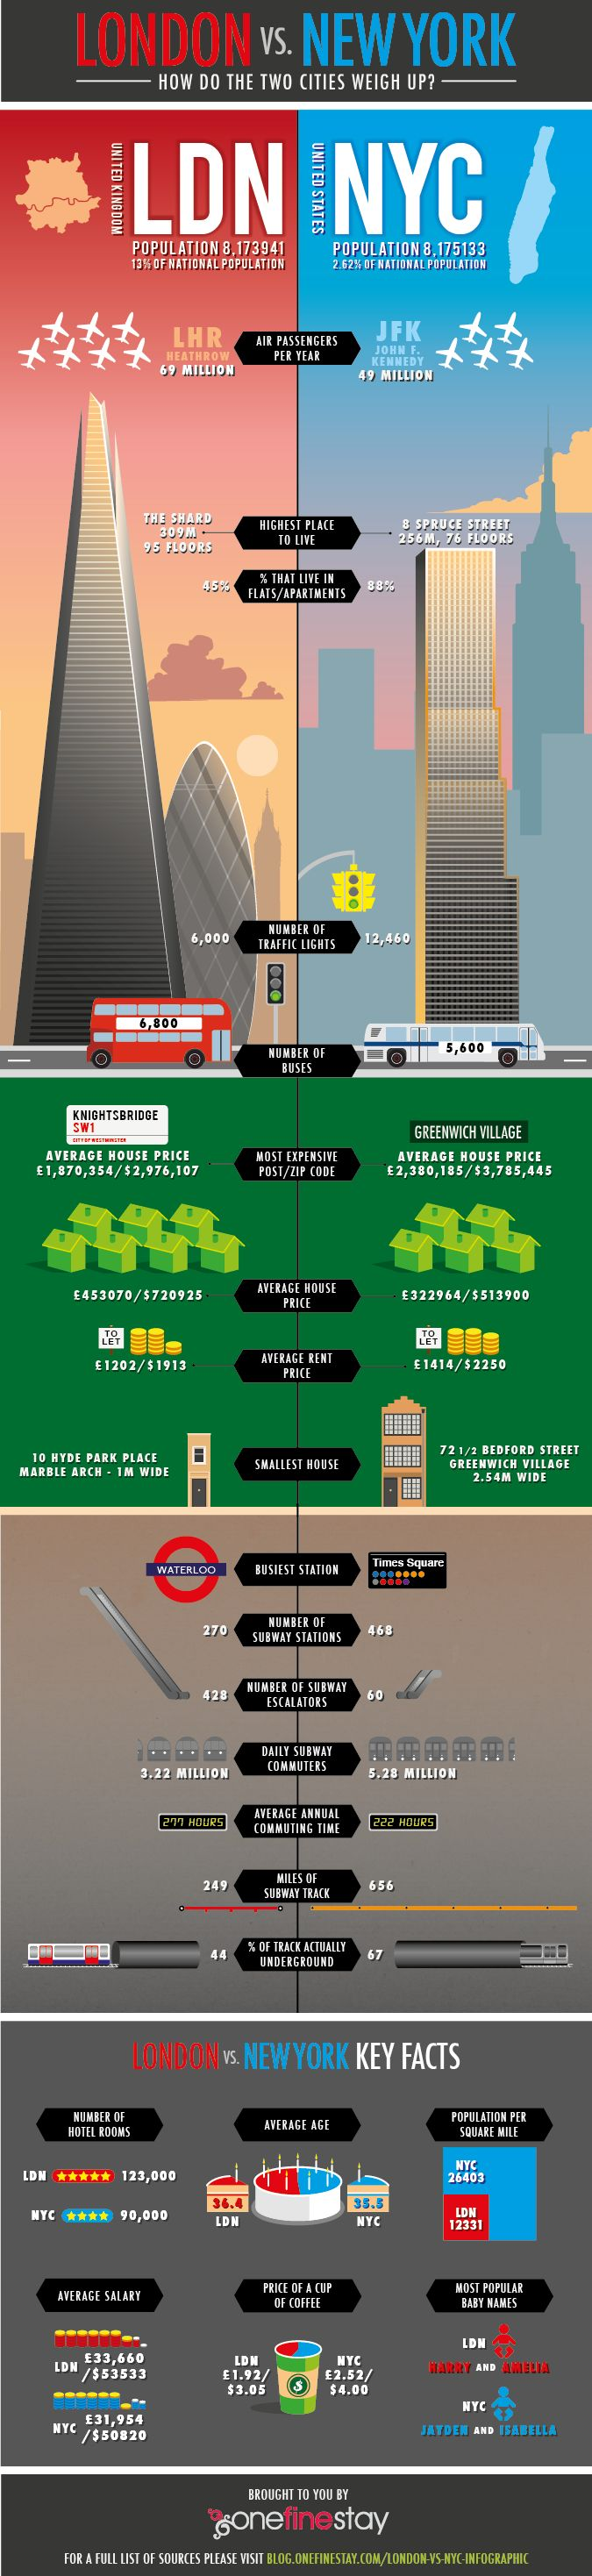 London vs. New York infographic